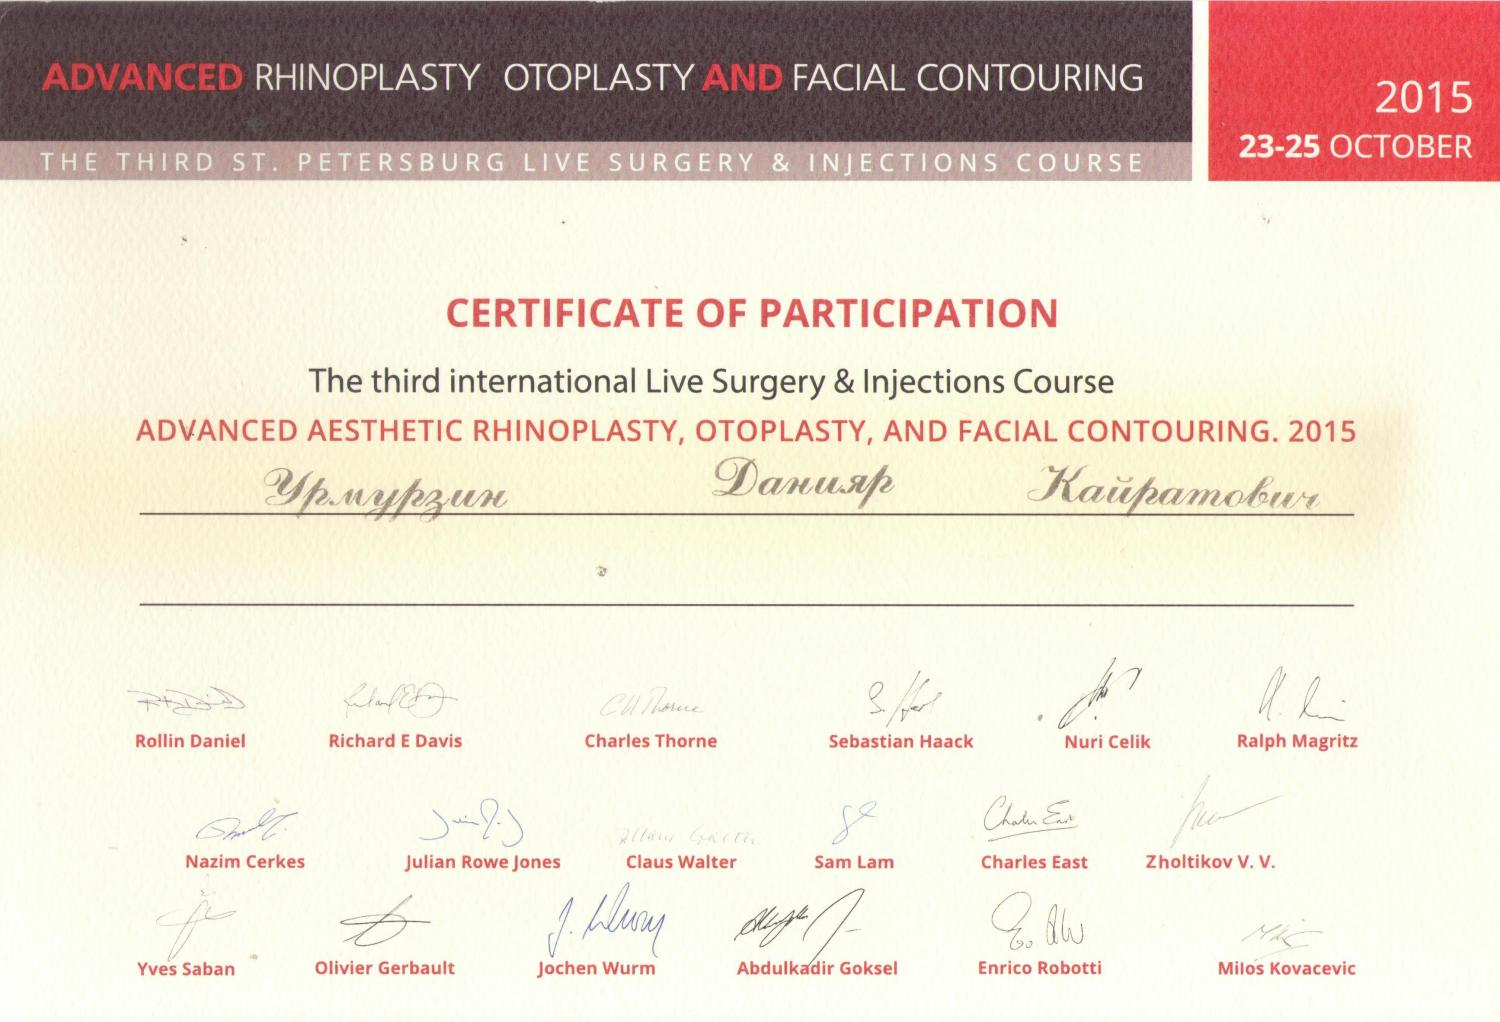 Advanced aesthetic rhinoplasty, otoplasty, and facial contouring. St.Petersburg, 2015.